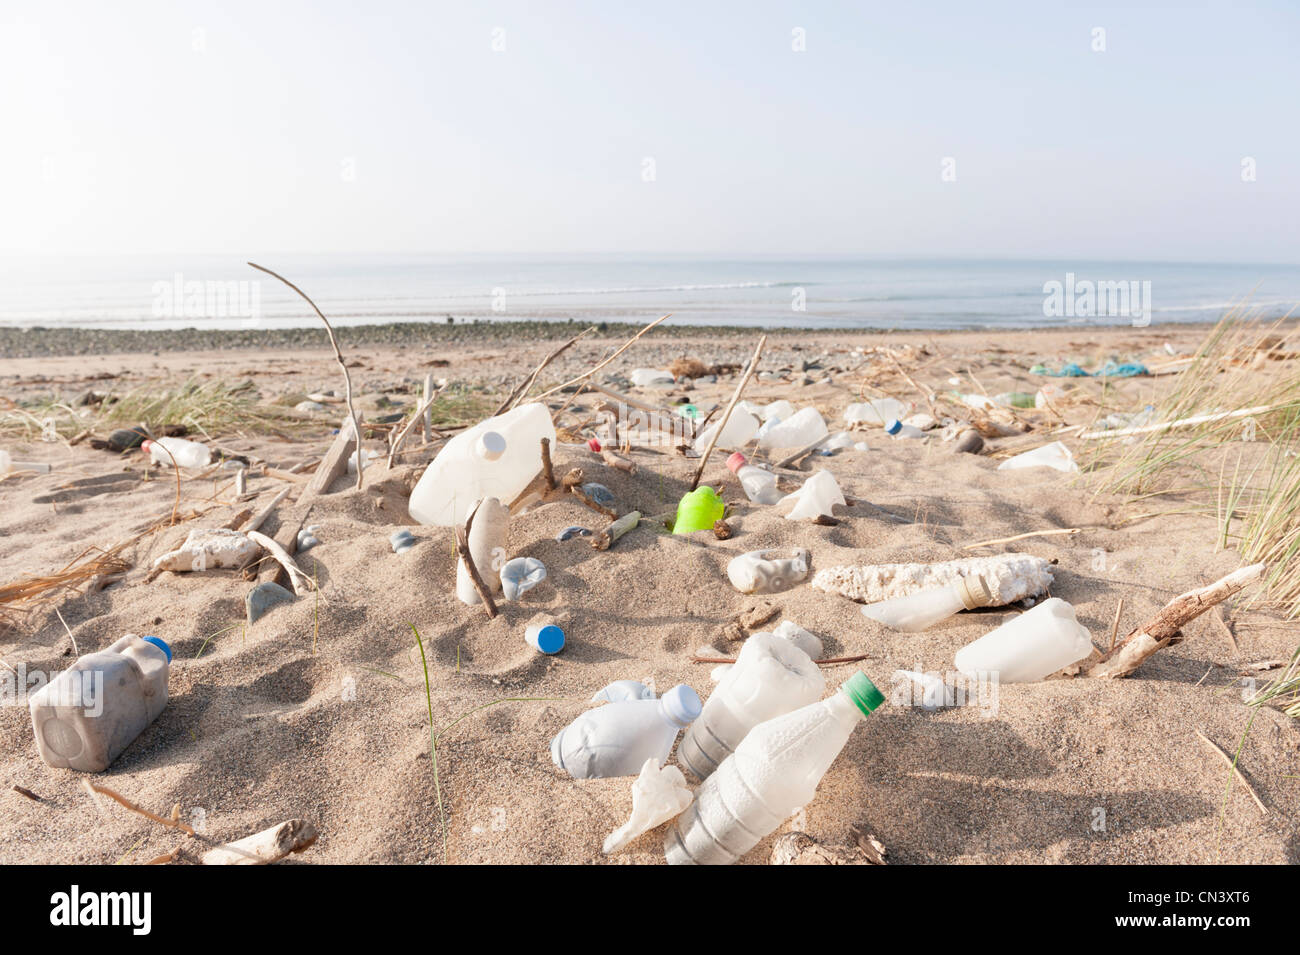 plastic bottles and other rubbish washed up by the tide on a beach - Stock Image